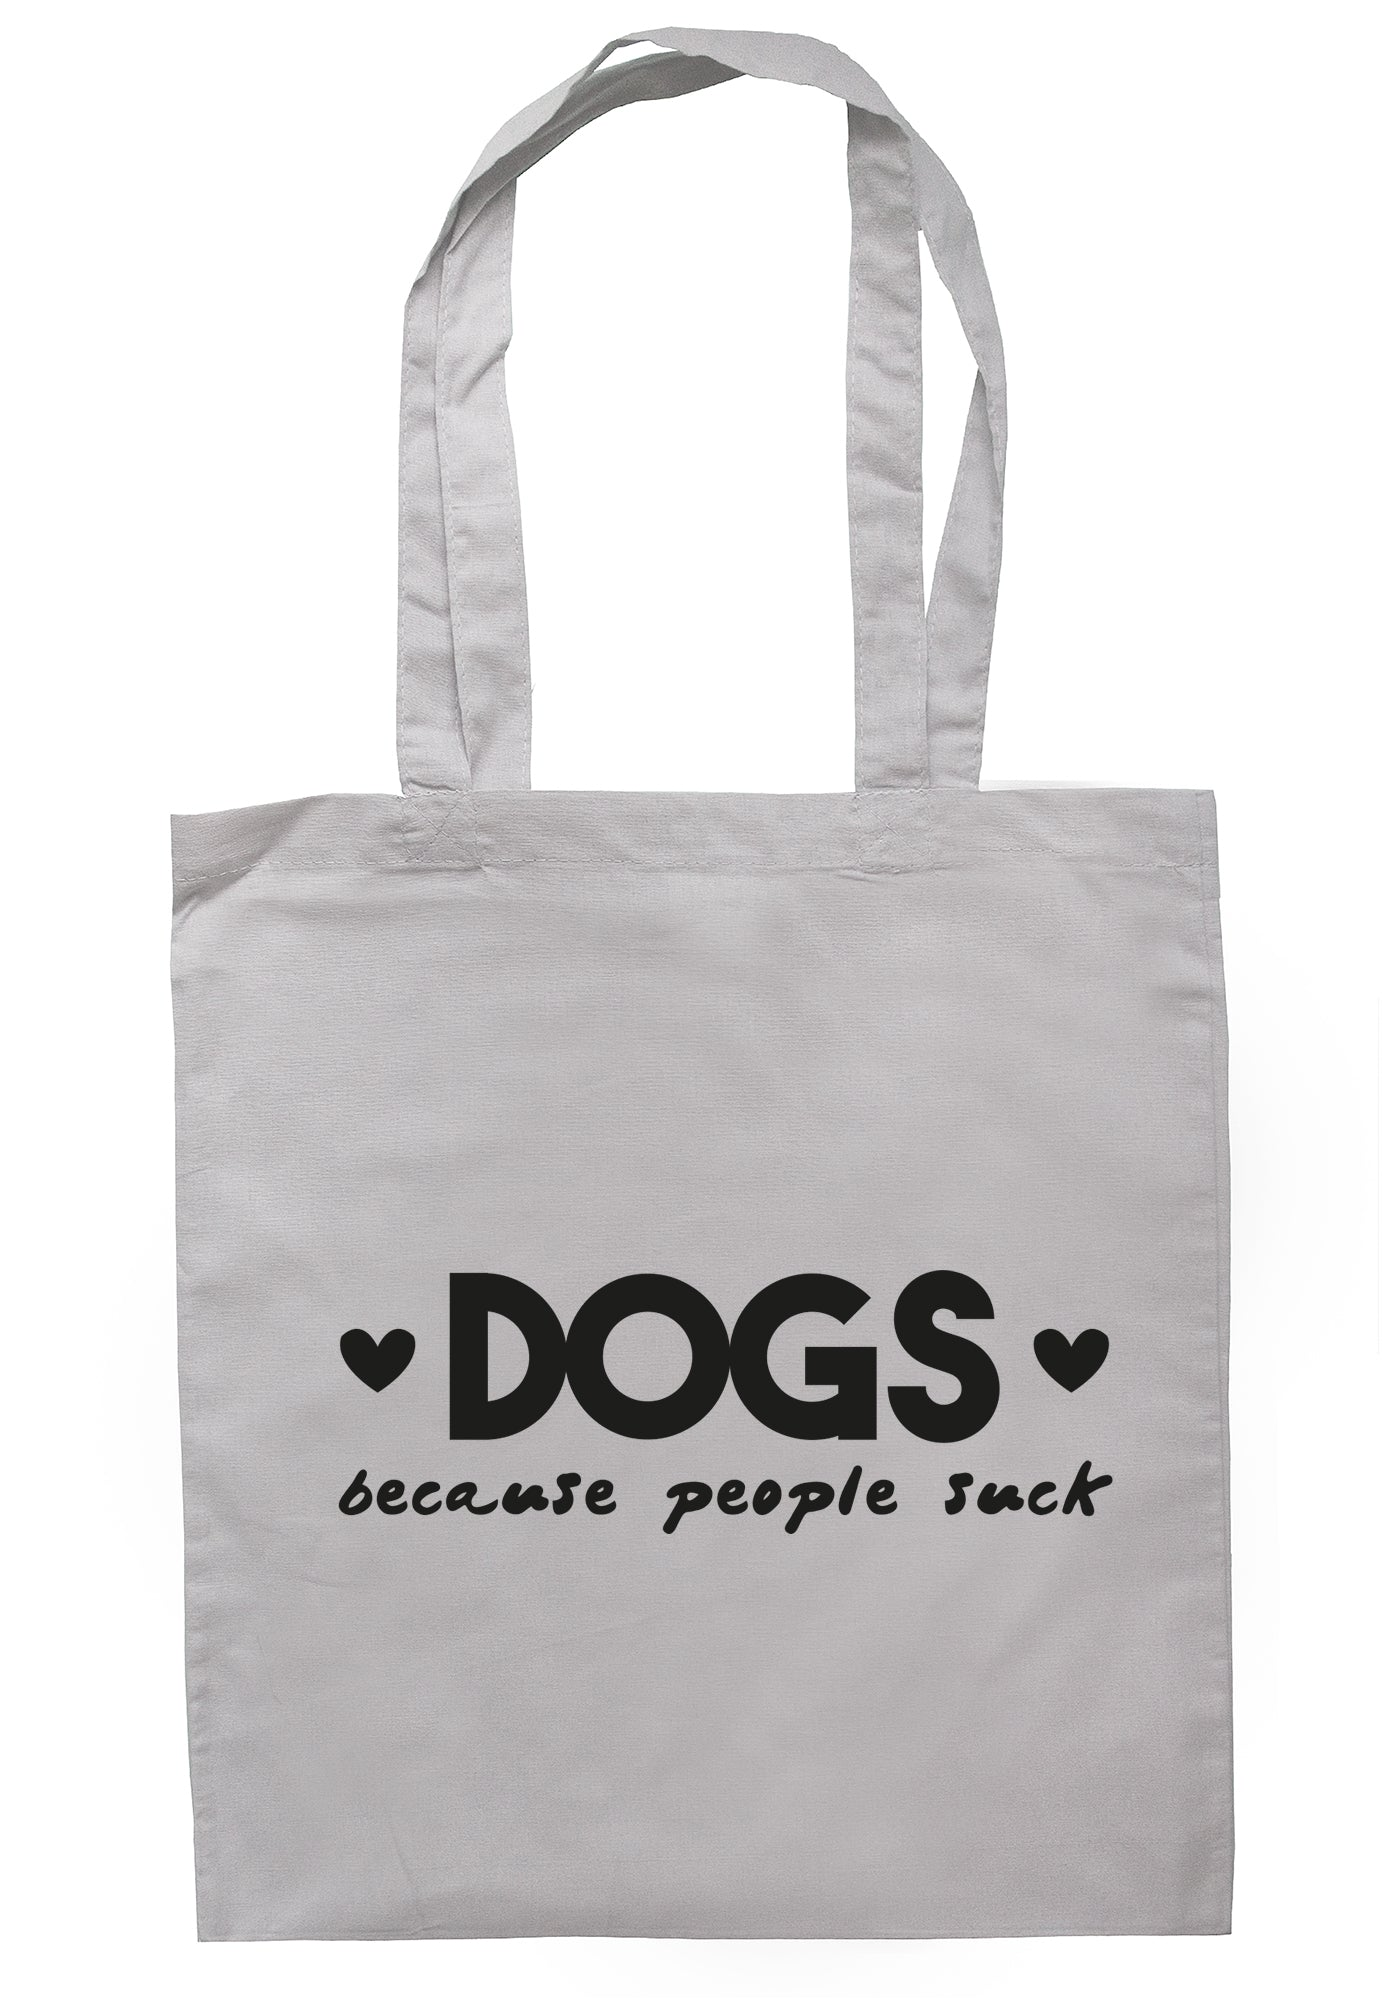 Dogs Because People Suck Tote Bag Long Handles TB1856